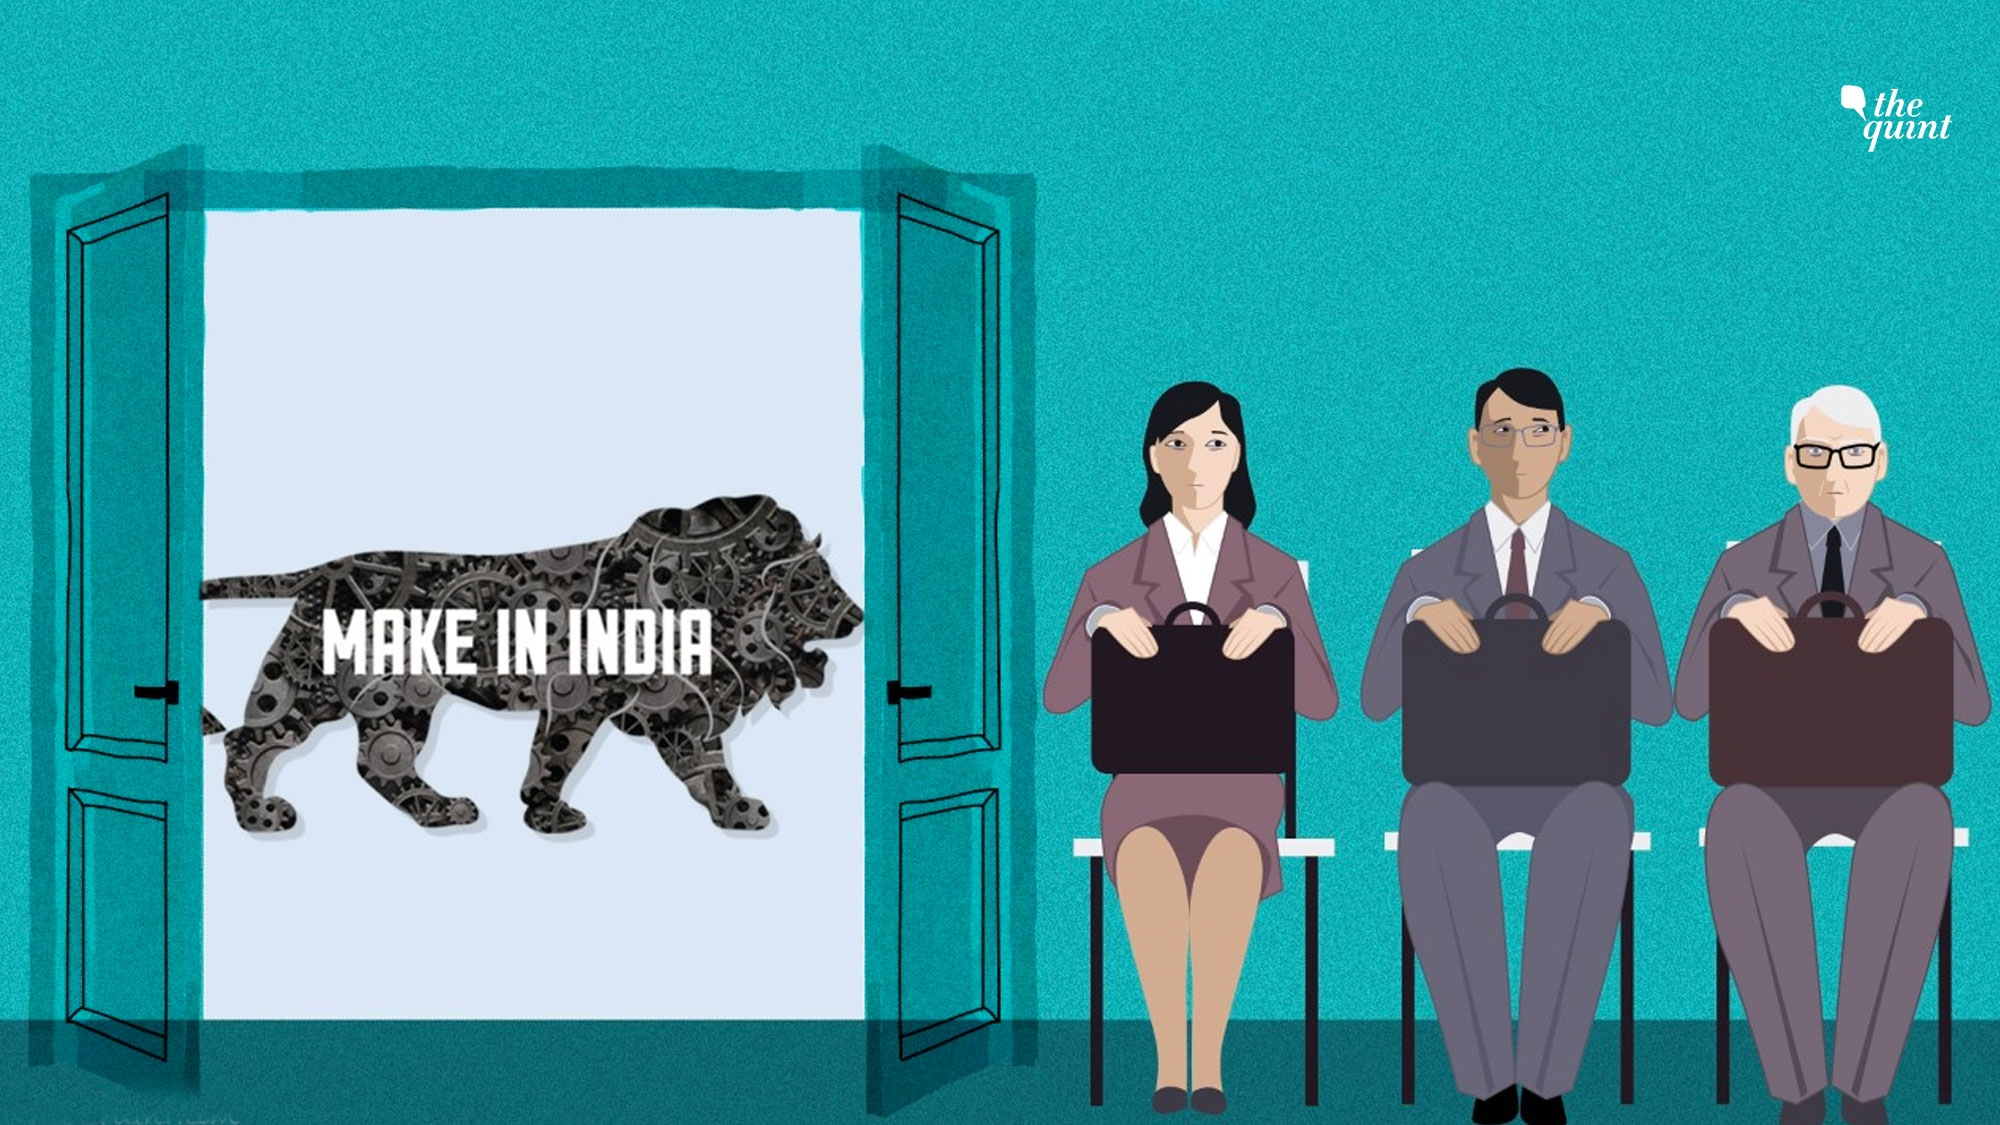 'Make in India' Revival: Let's Start by Simplifying GST Regime